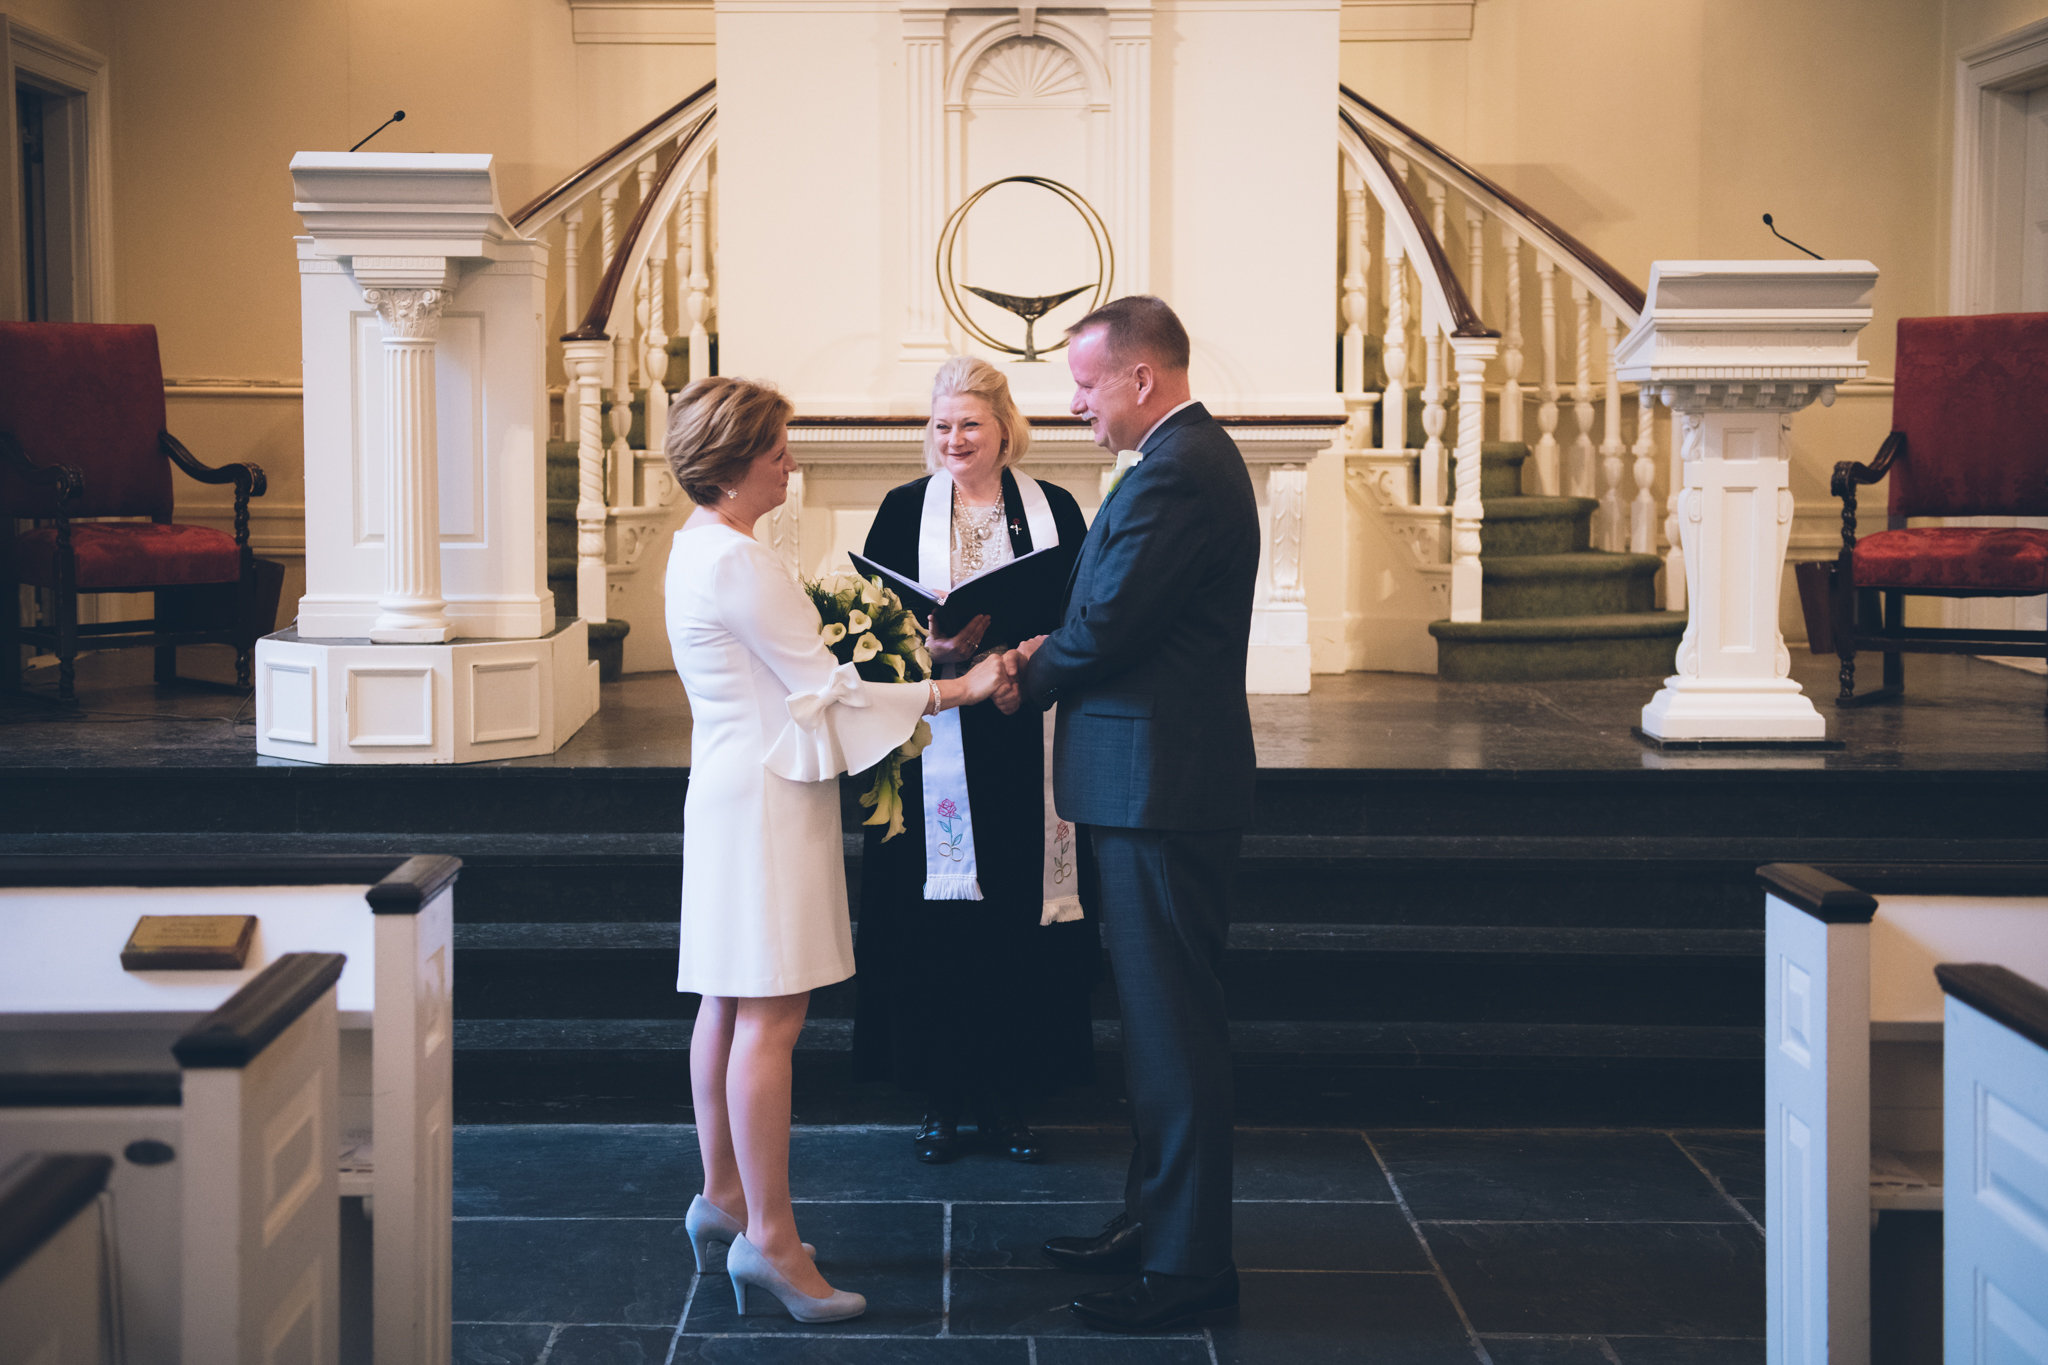 Rev. Annie Lawrence, NYC Wedding Officiant